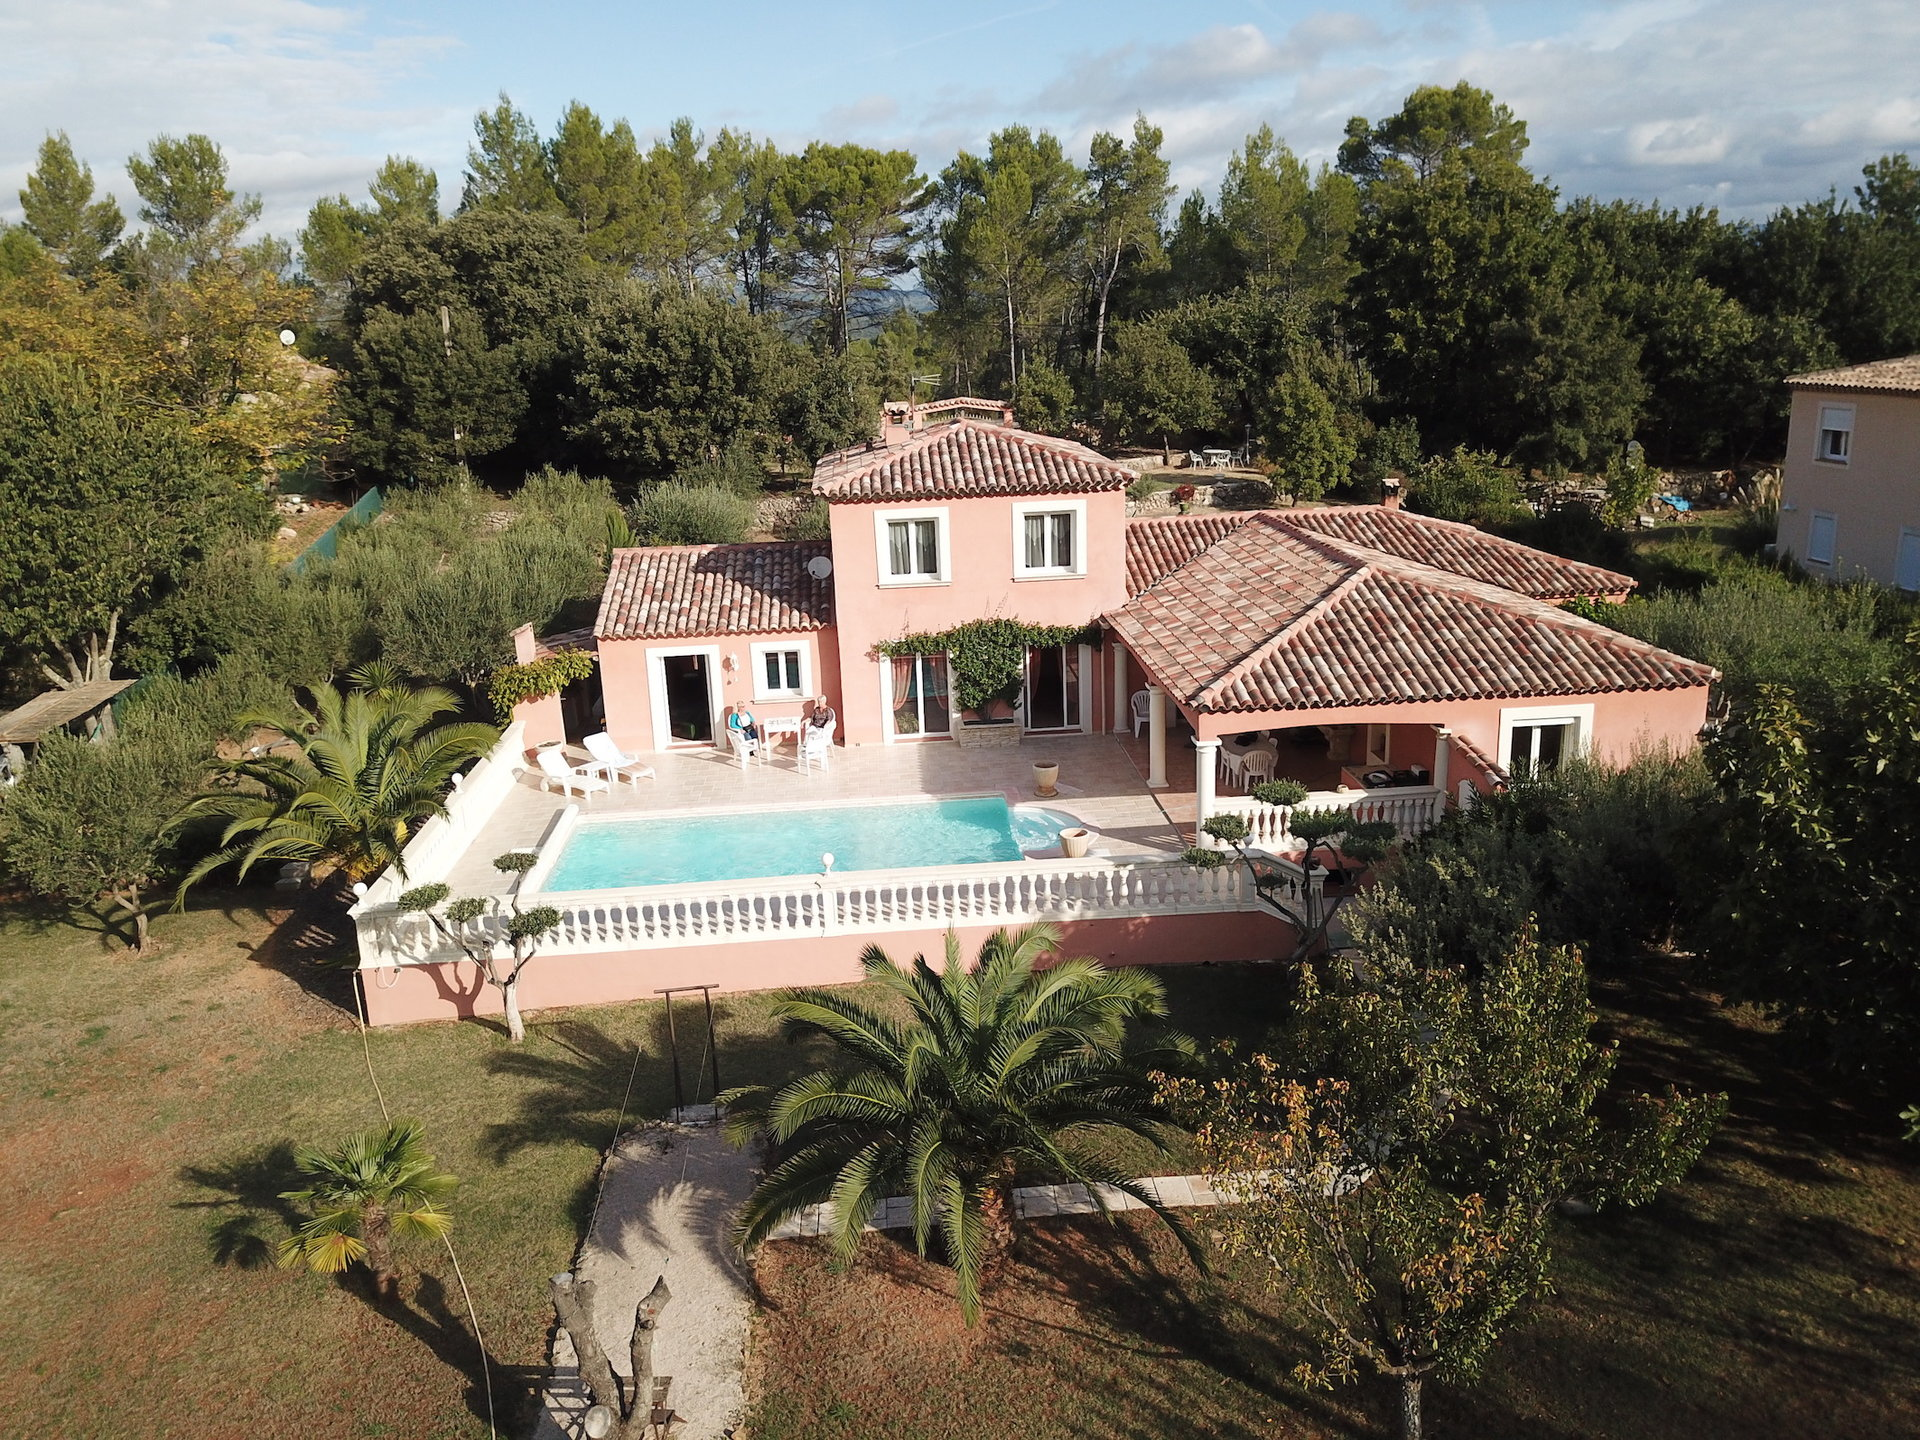 Carces, authentic charm for this beautiful Provencal house